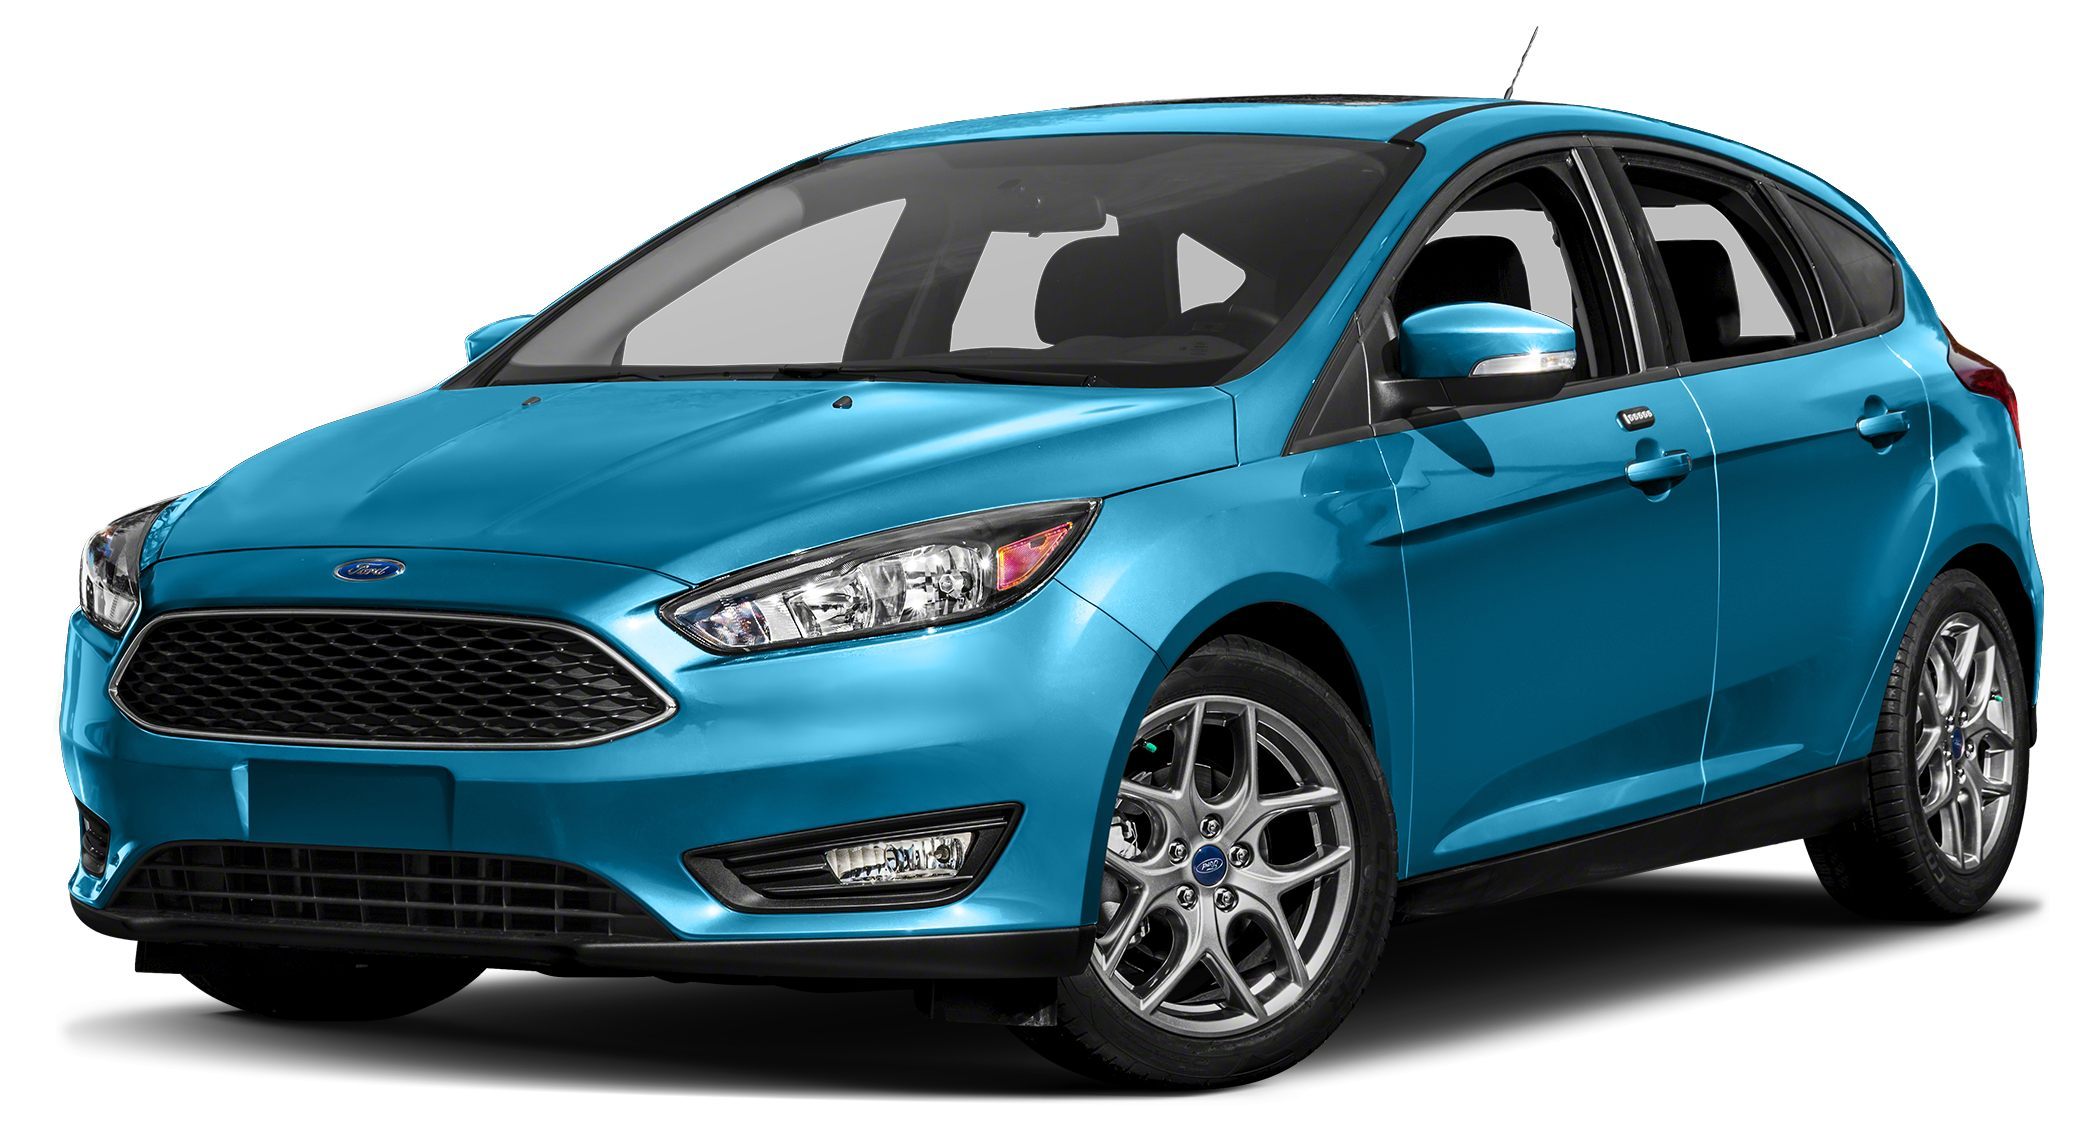 2015 Ford Focus SE It only takes a glance to see the all-new 2015 Ford Focus dynamic new look On